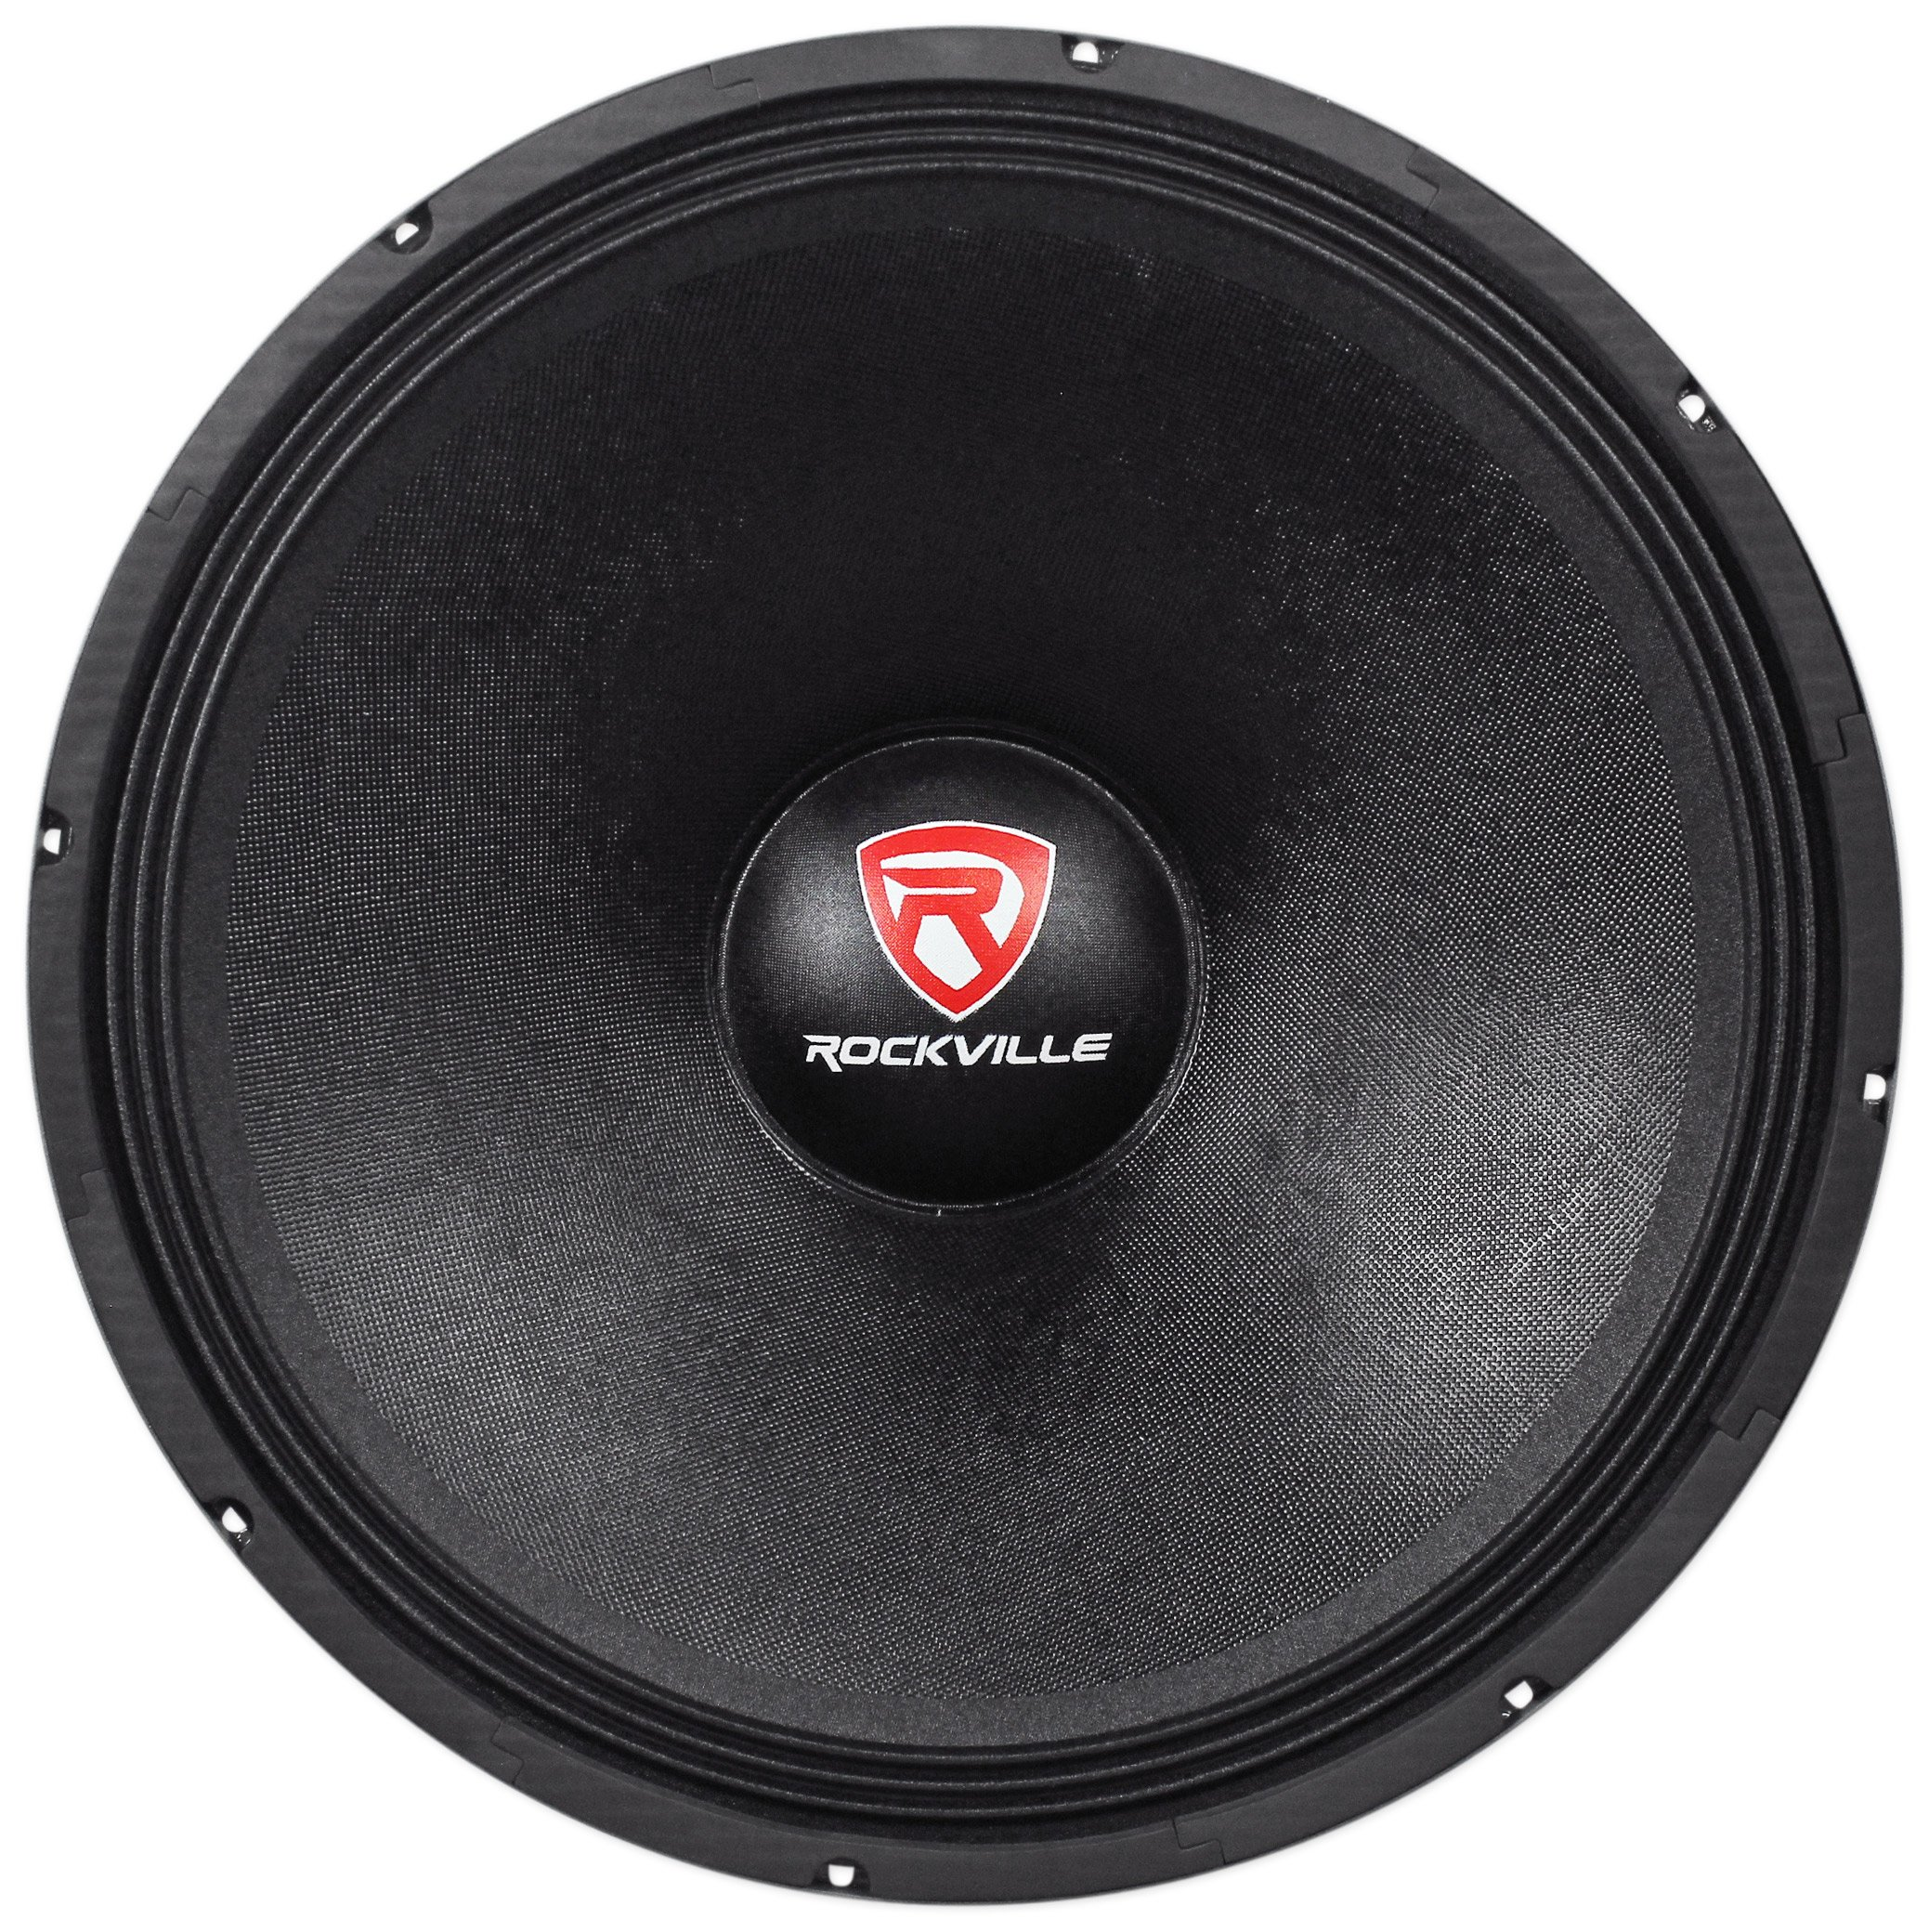 Rockville RVW1800P4 1800w 18'' Raw DJ Subwoofer 4 Ohm Sub Woofer 240OZ Magnet by Rockville